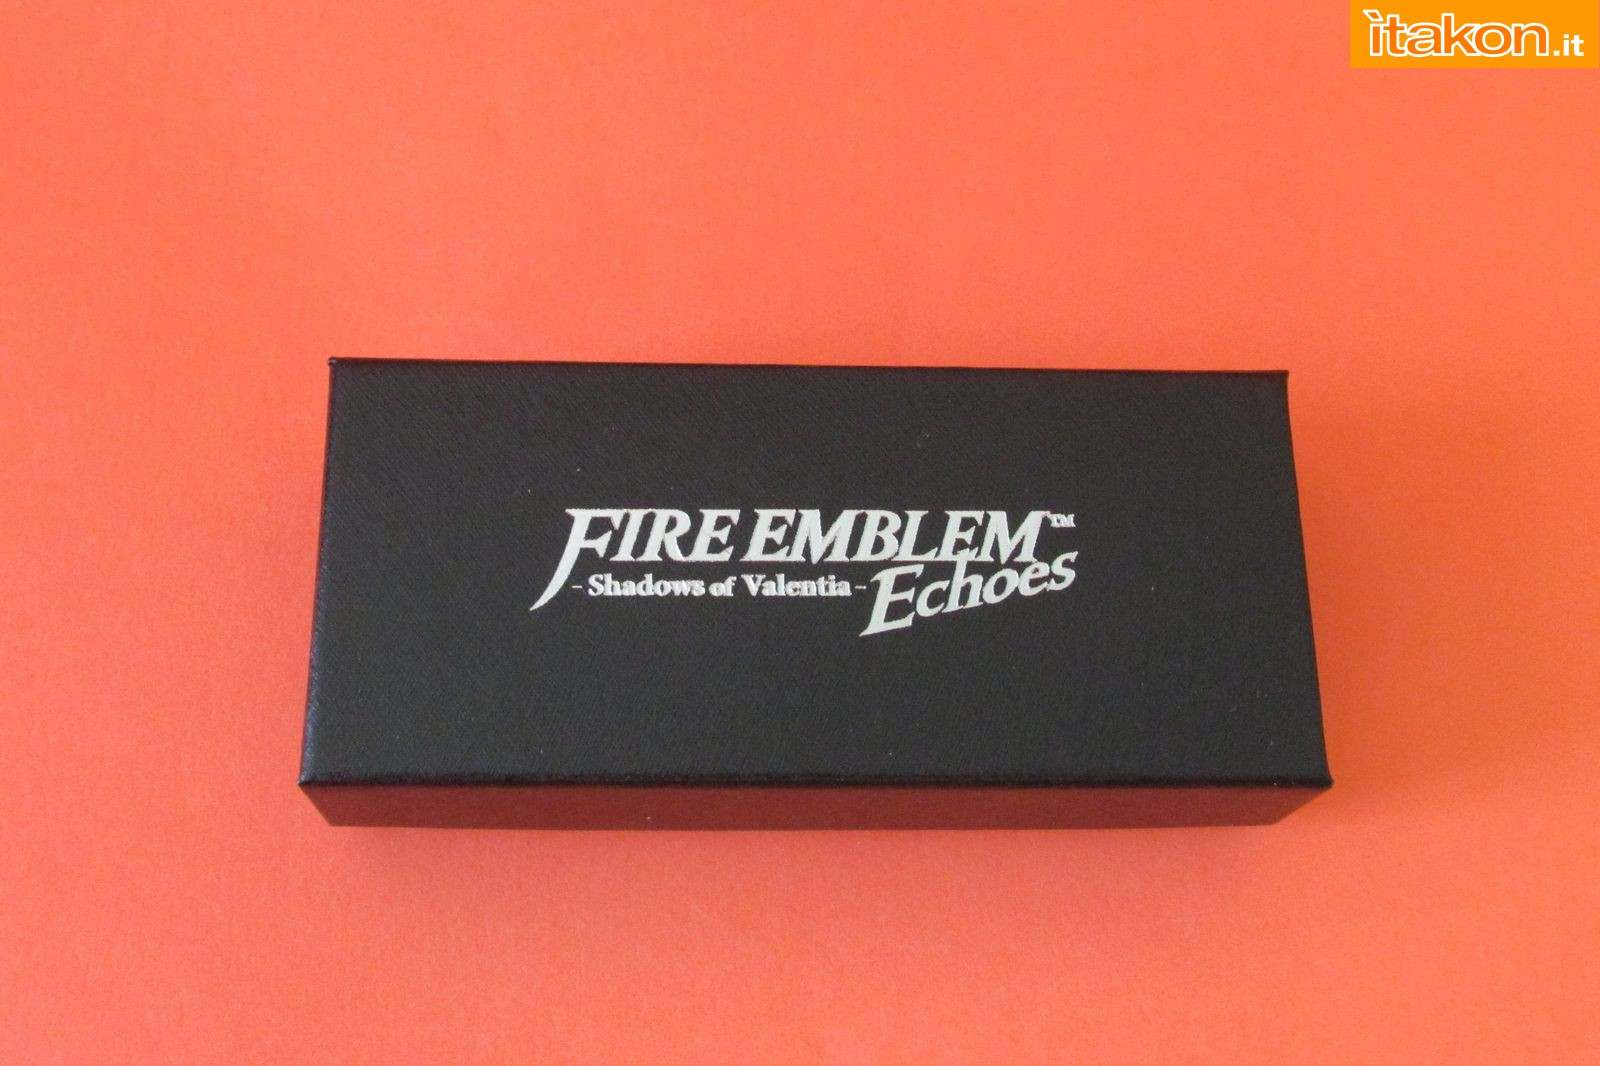 Link a Fire Emblem Echoes Shadow of Valentia Limited Edition Itakon.it 21